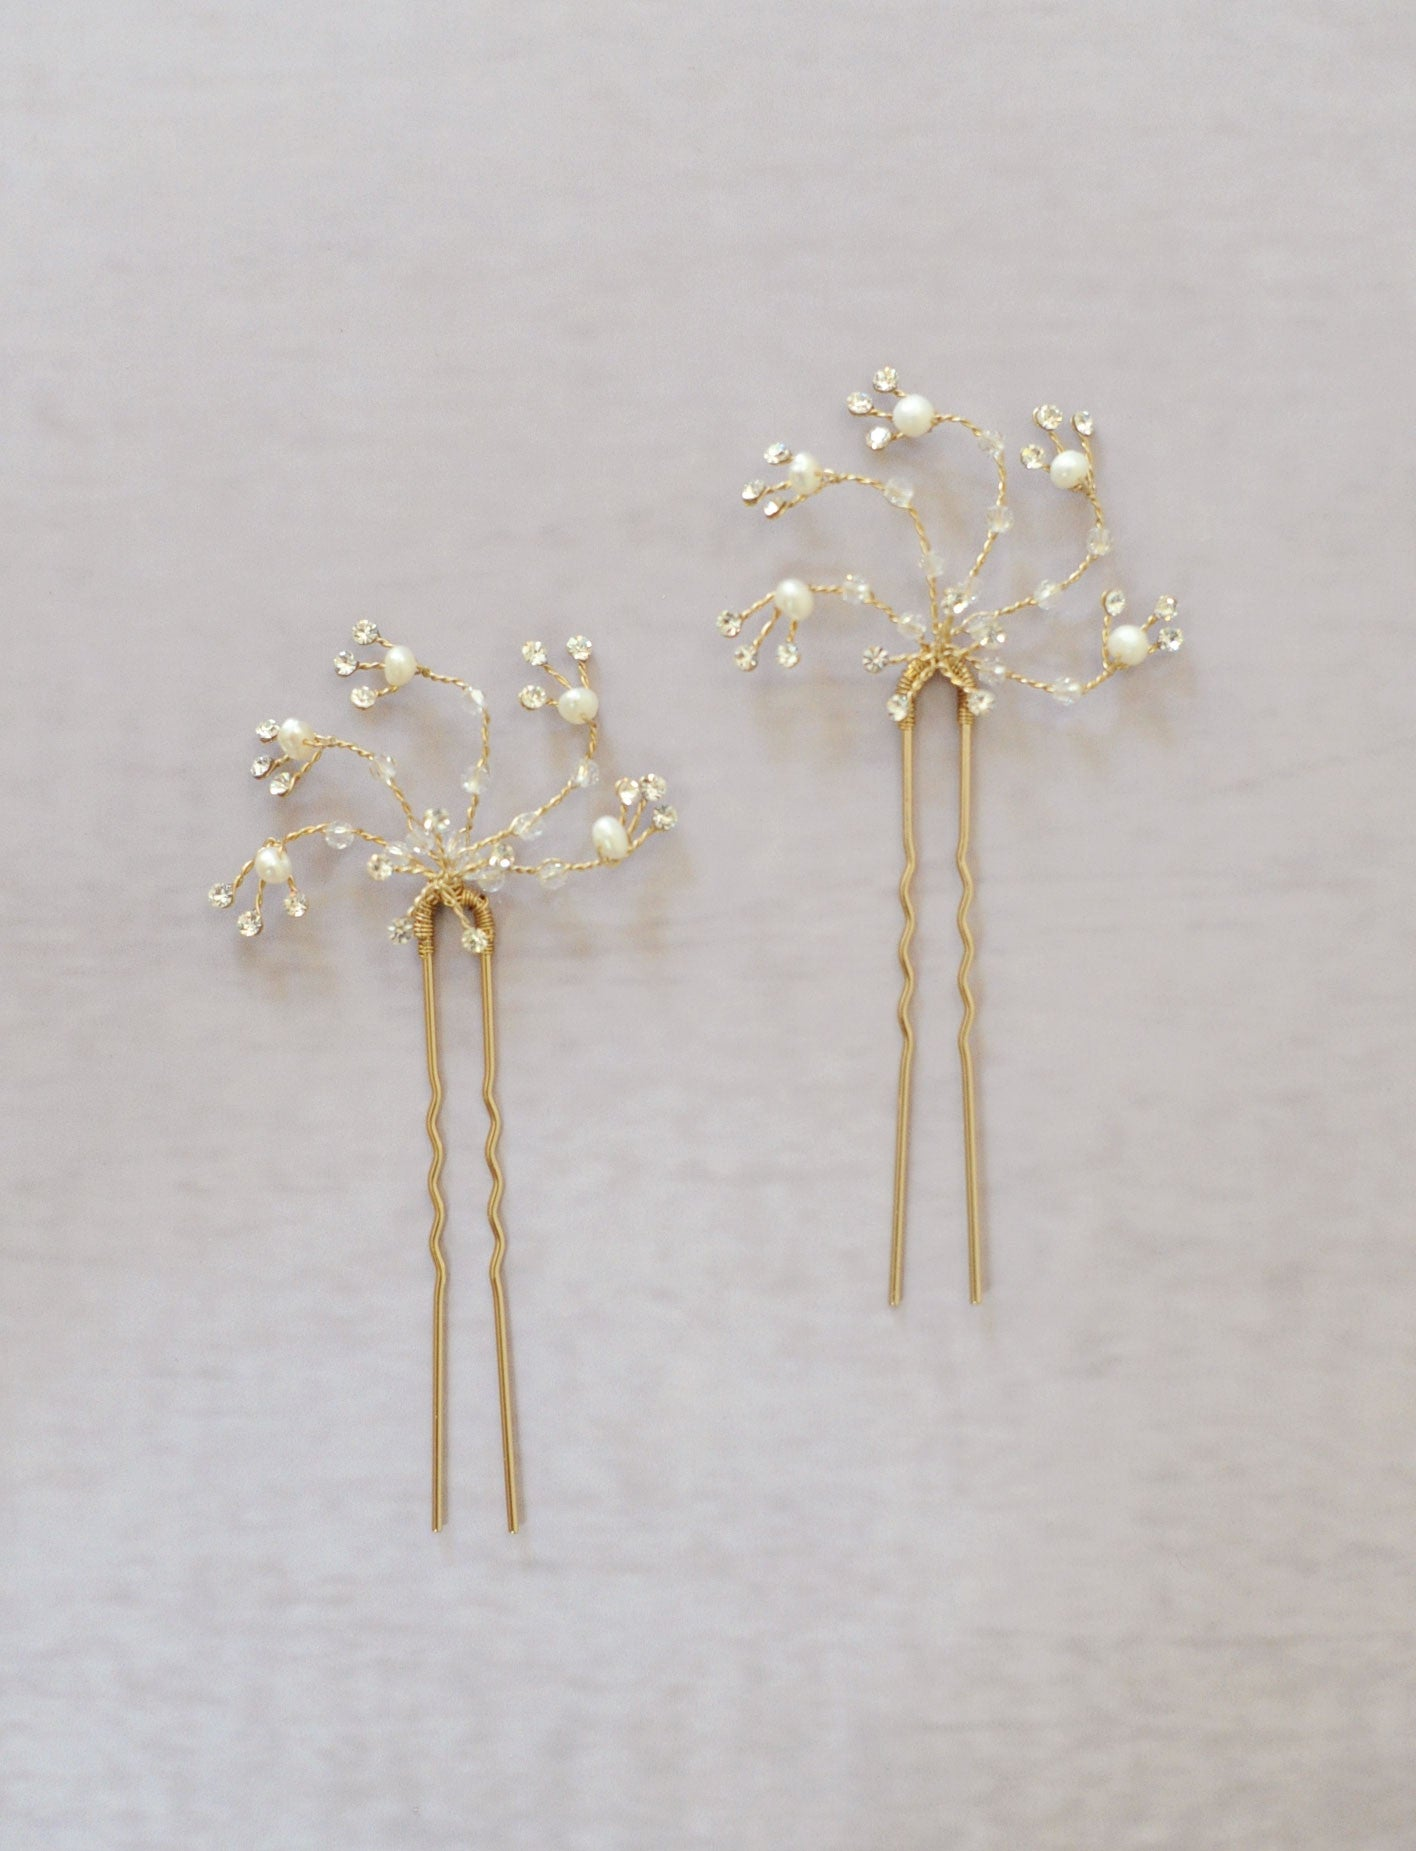 Crystal swirl bobby pin pair - Style #516